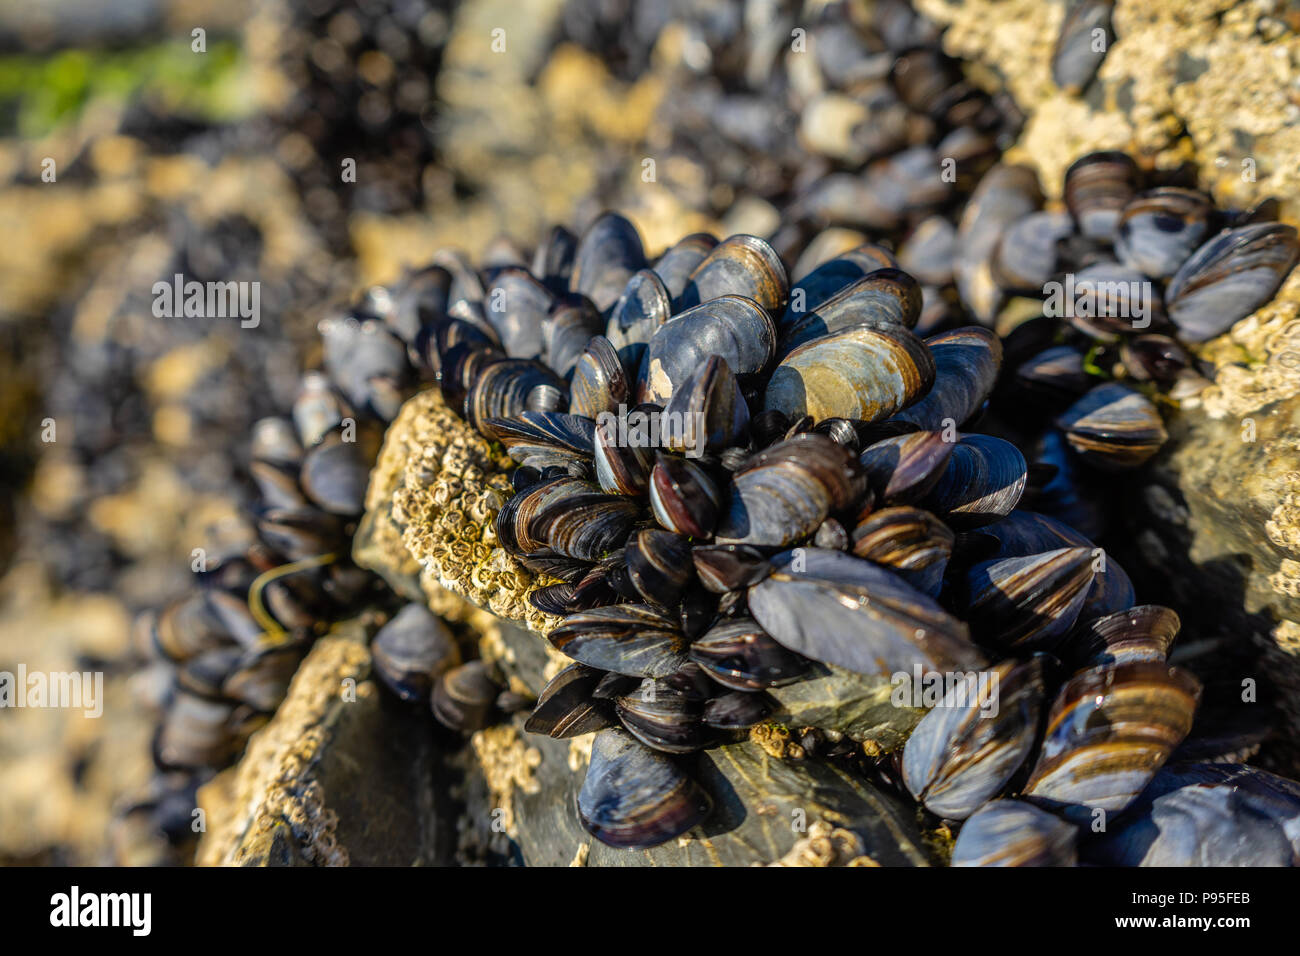 Live blue mussels (Mytilus edulis) on a rock in North Cornwall on the Atlantic Ocean Coast during summer 2018 (July), Cornwall, Enland, UK - Stock Image